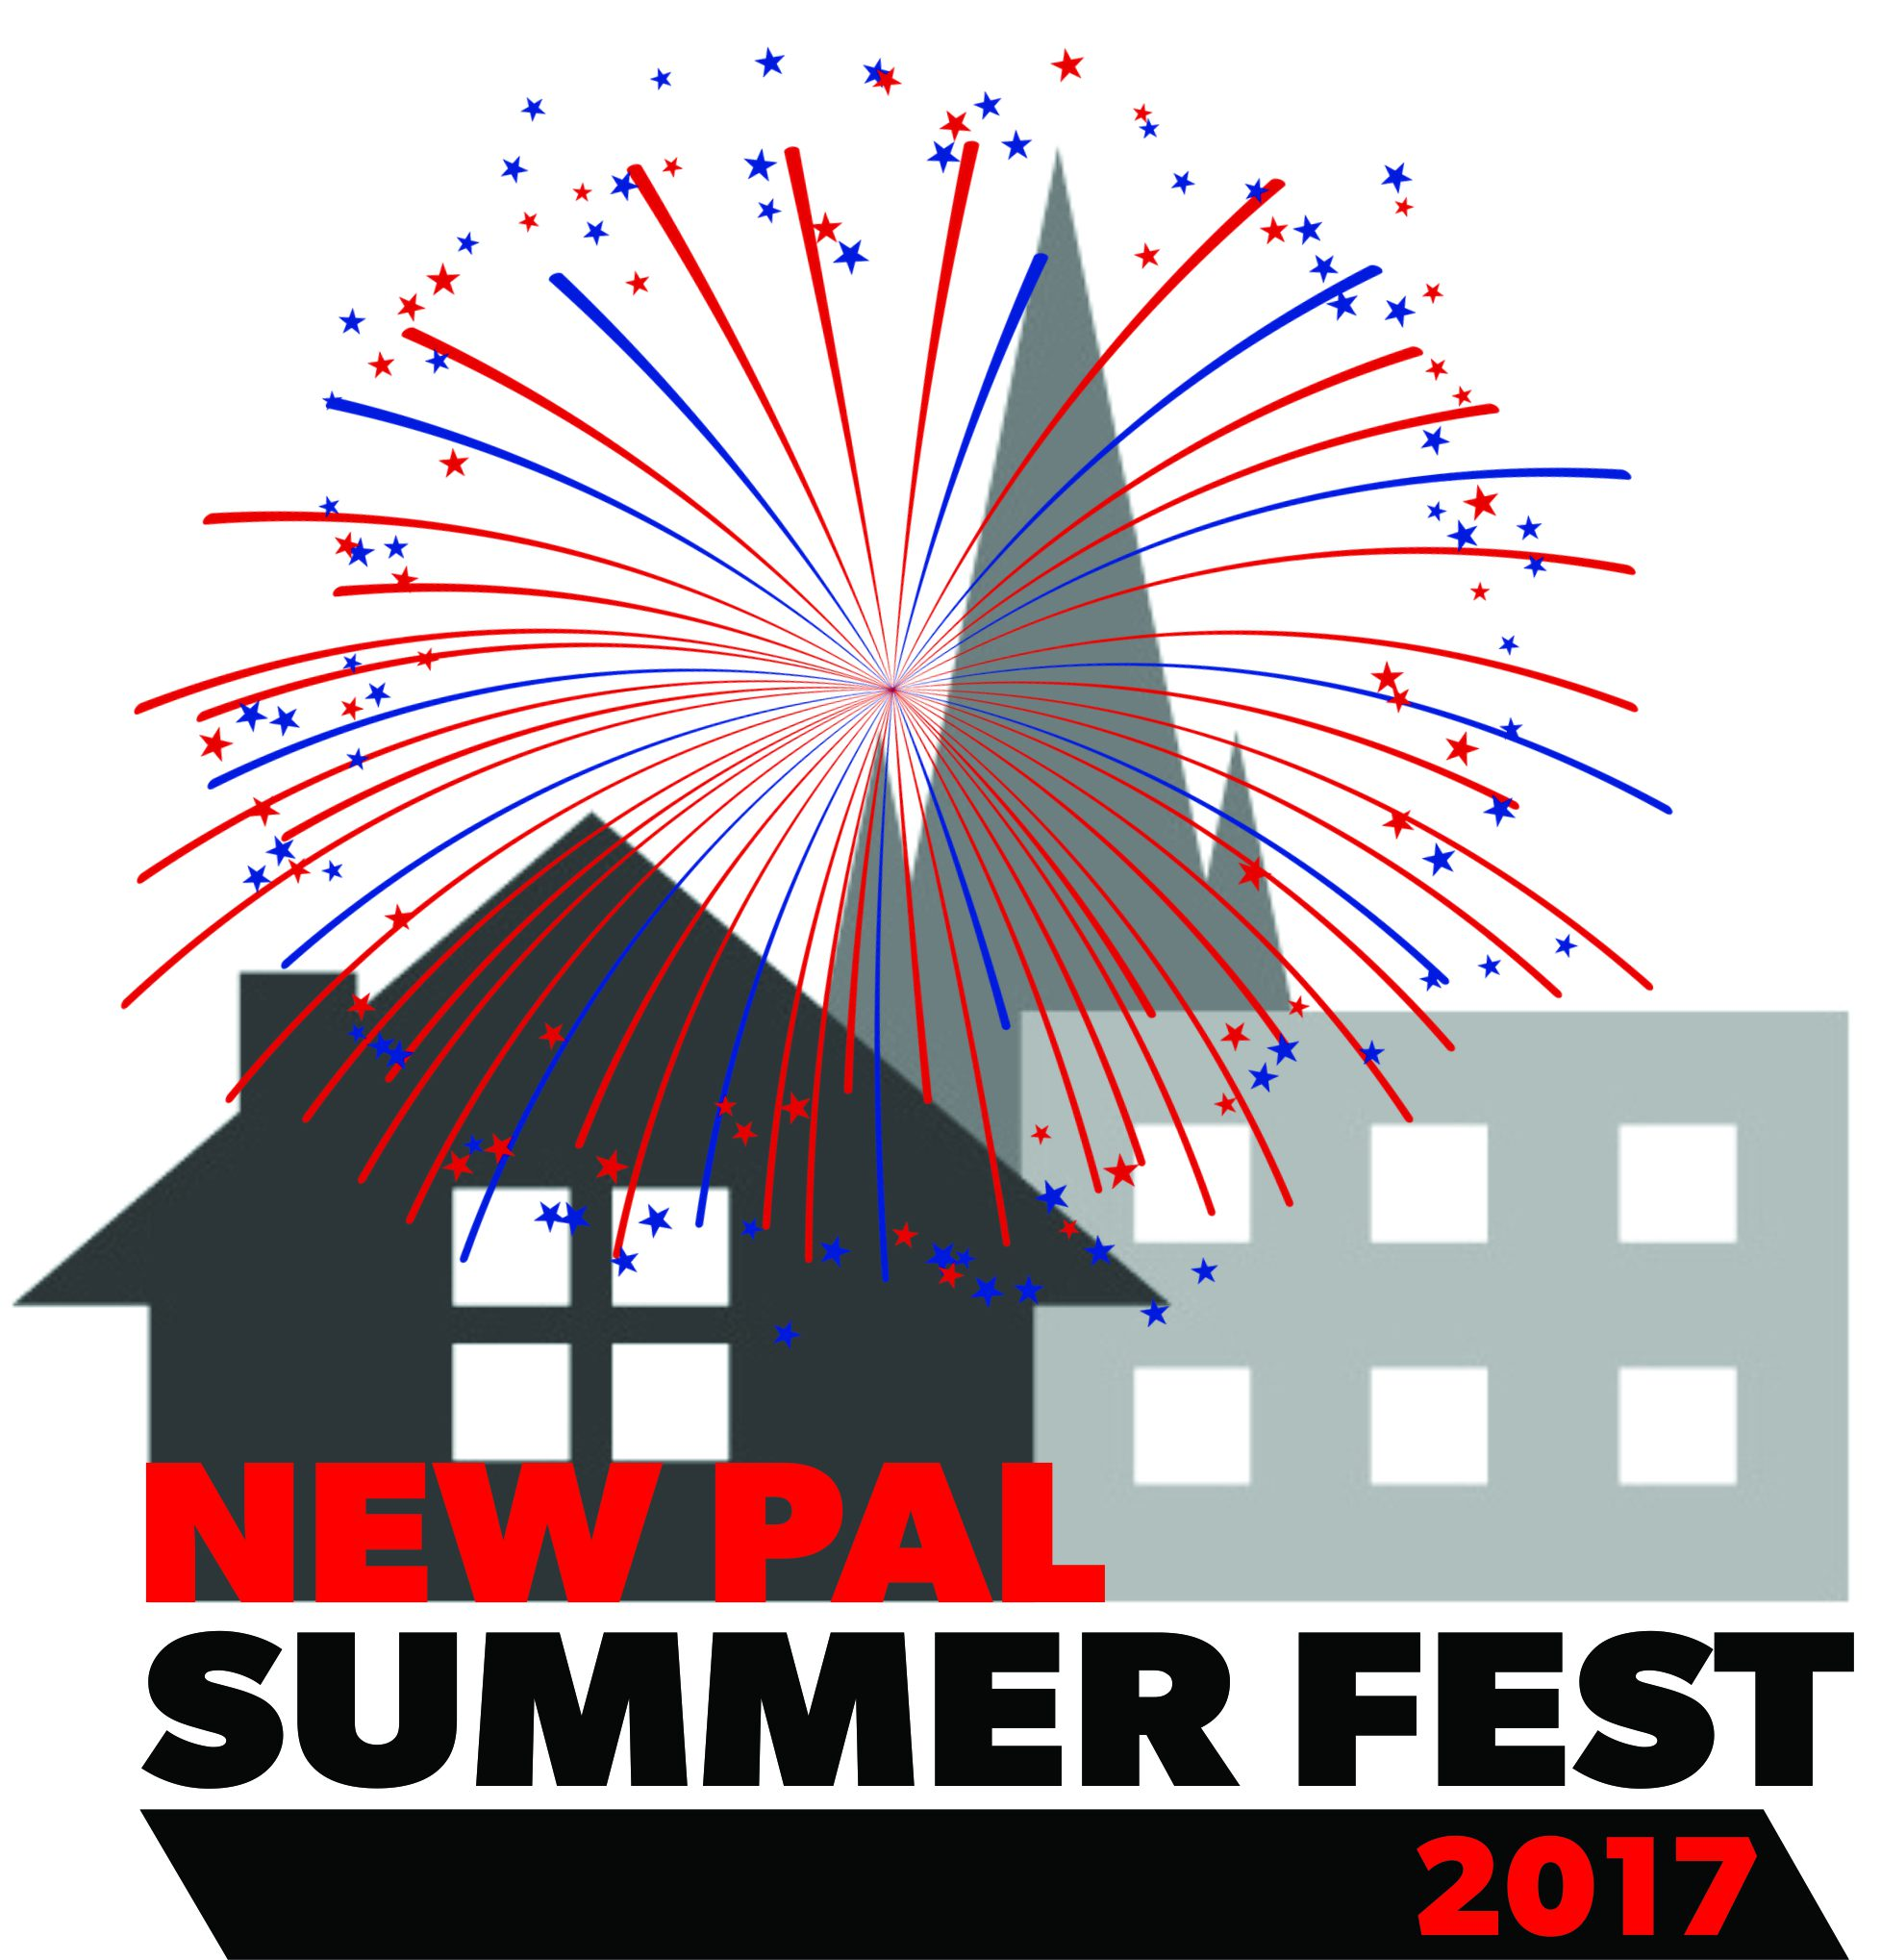 New Pal Summer Fest